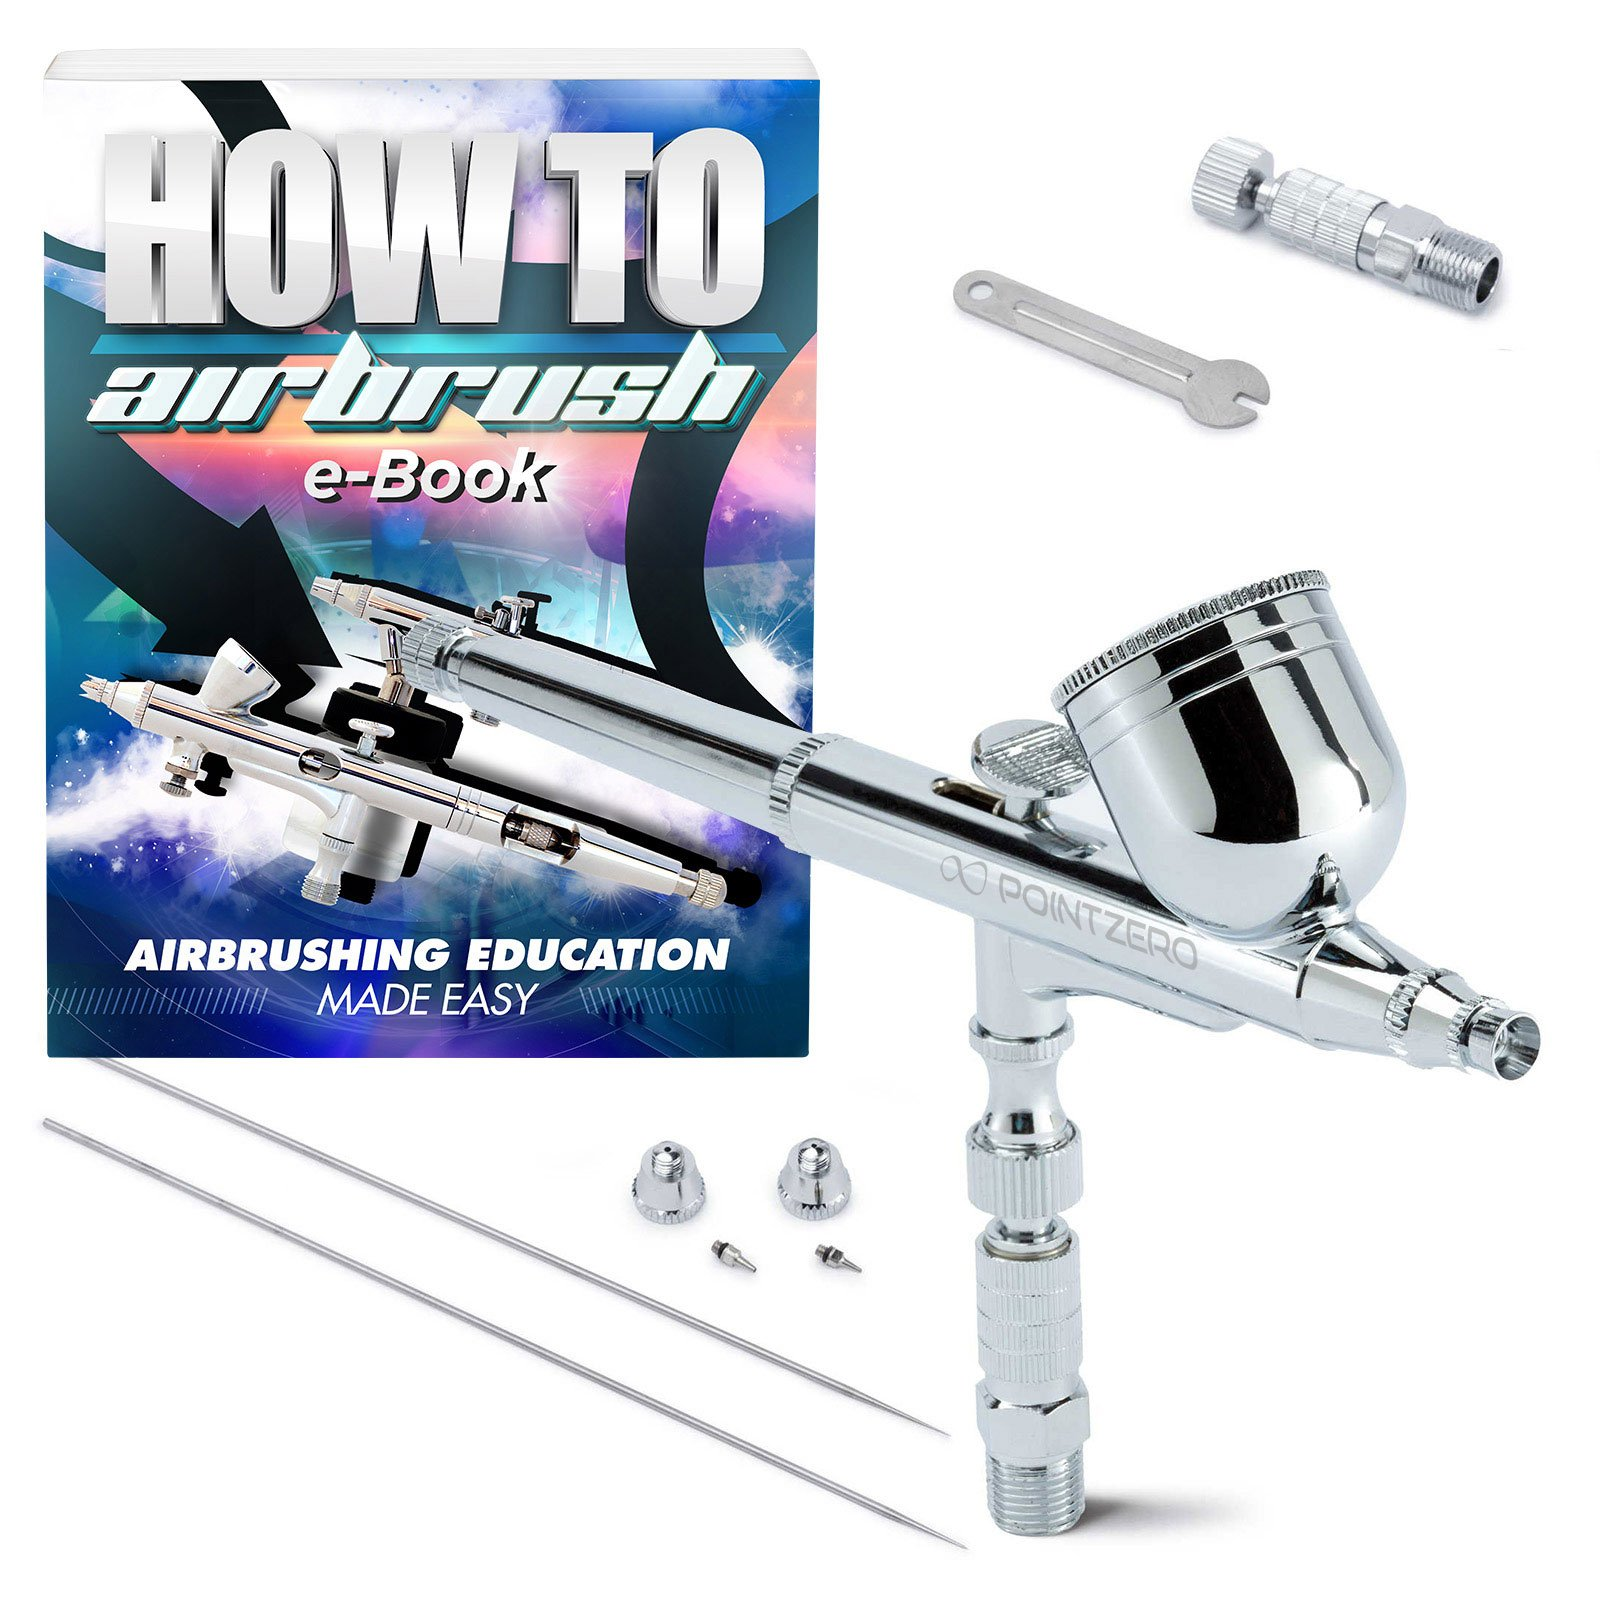 PointZero Dual-Action 7cc Gravity-feed Airbrush 3 Tip Set (.2mm .3mm .5mm)